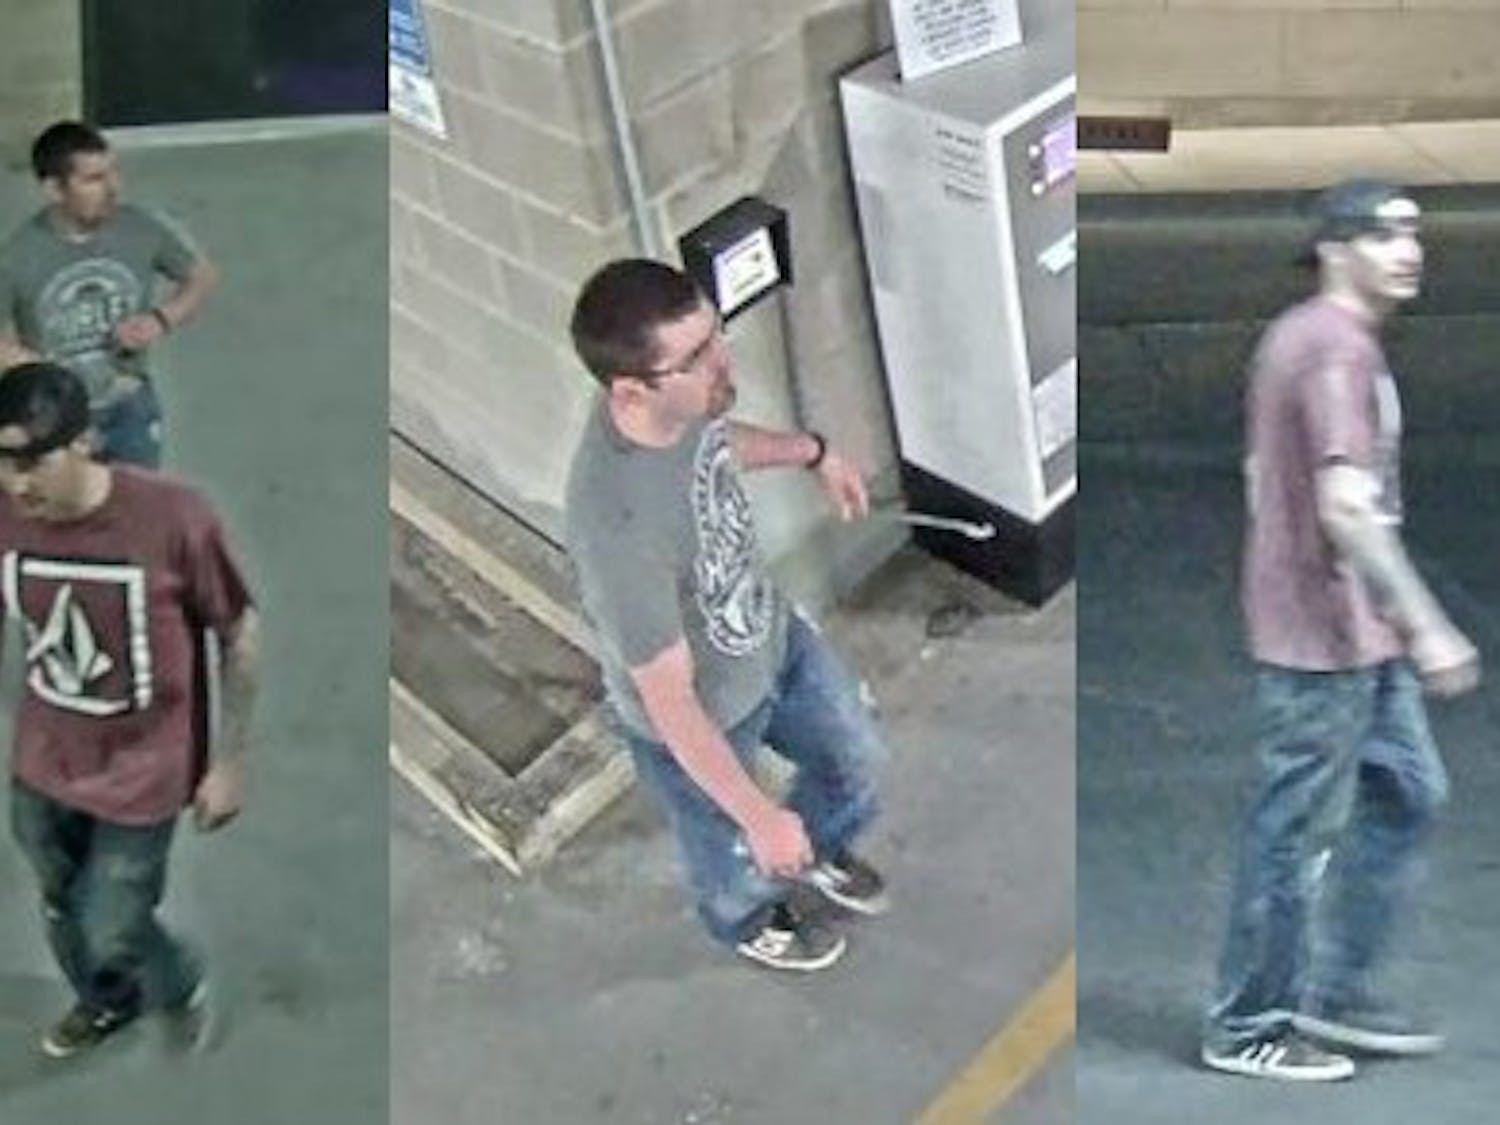 Video surveillance showedthe two individuals had been in a construction area and damaged property inside the building.